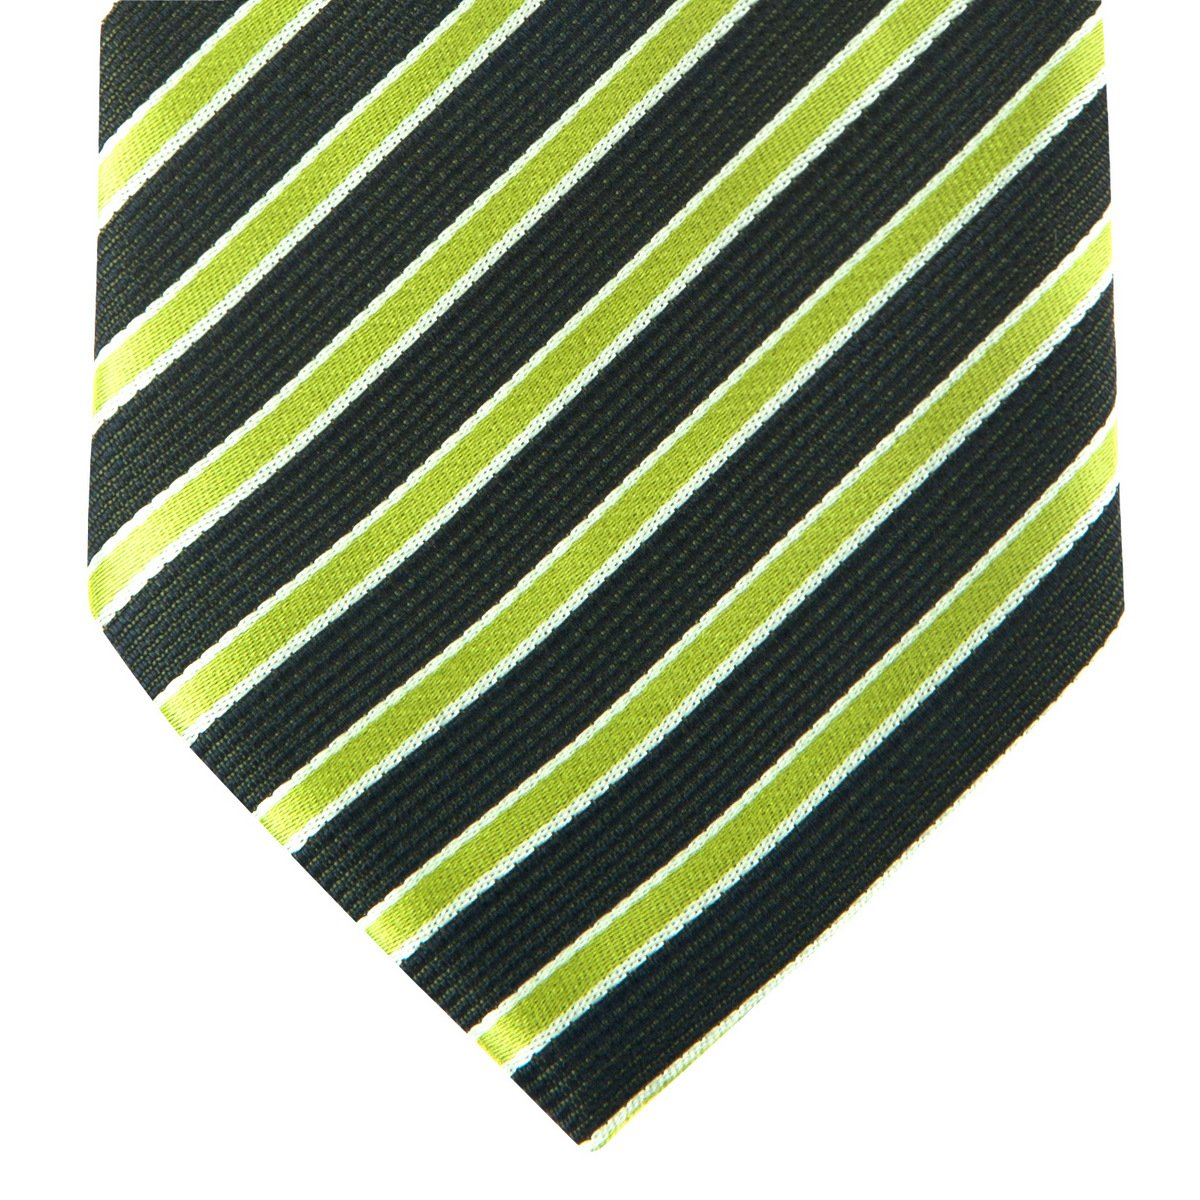 Two-Colour Striped Woven Mens Tie Necktie w//Pocket Square /& Cufflinks Gift Set